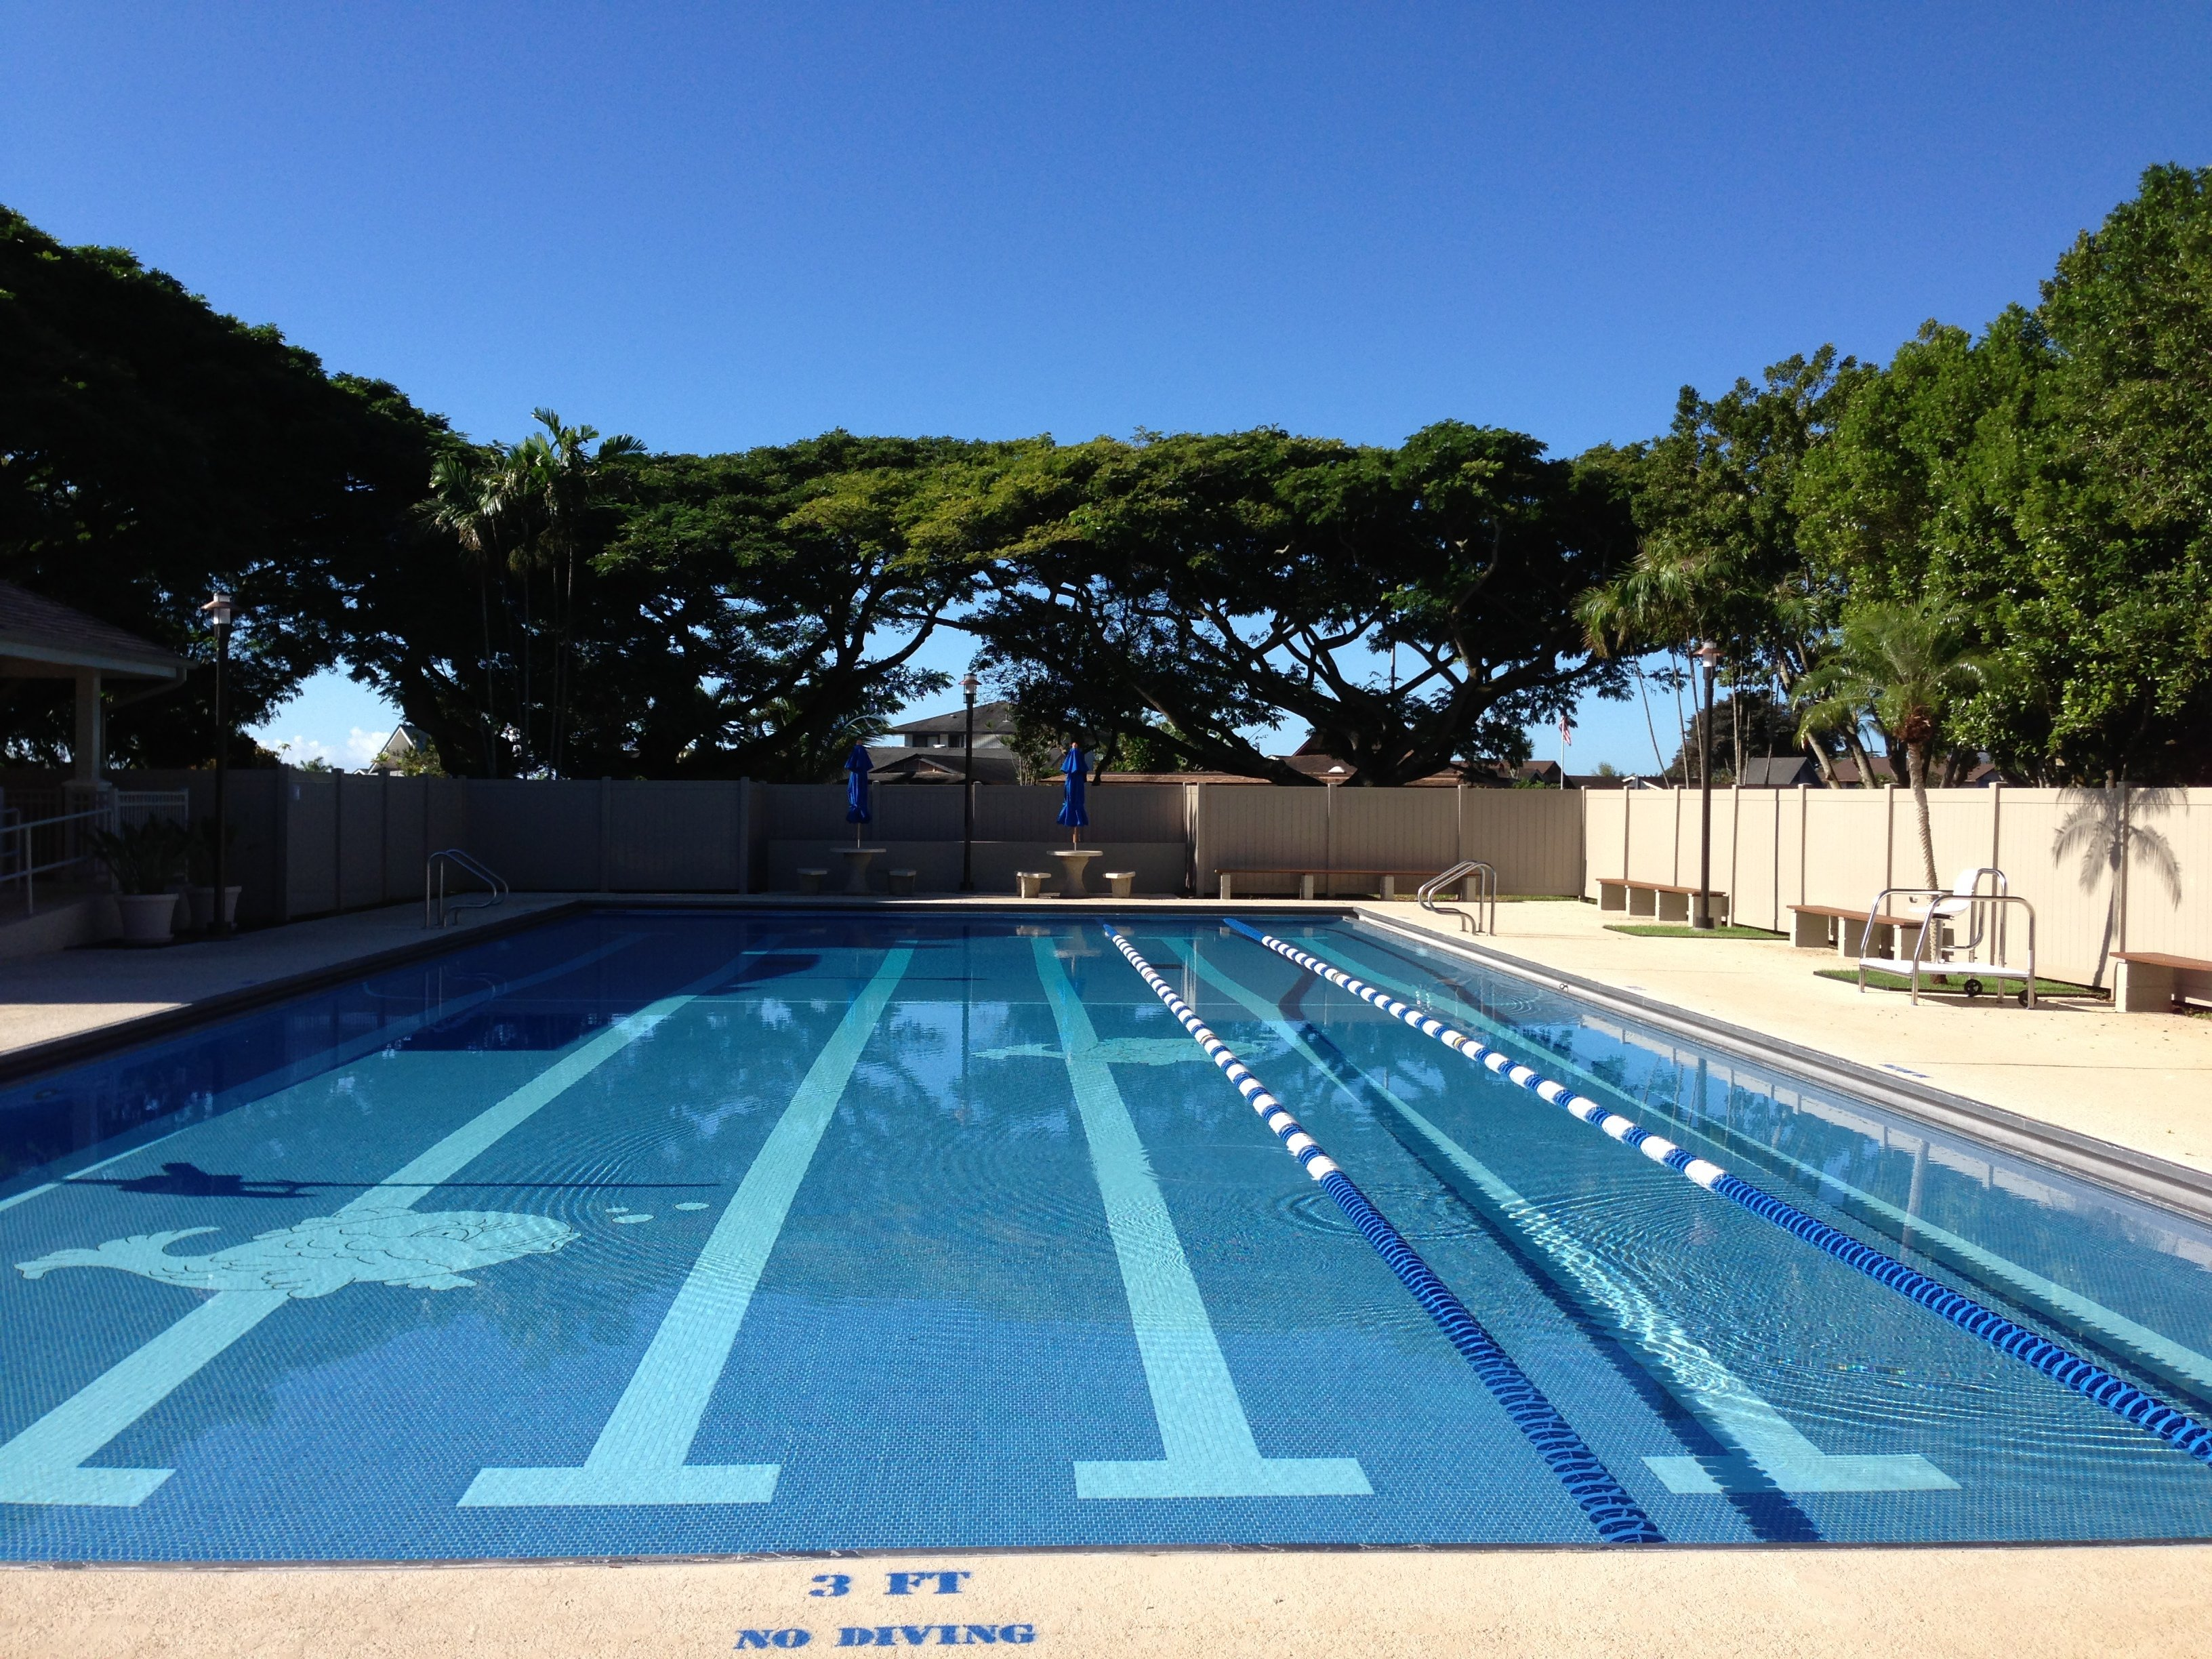 Concrete Swimming Pool Contractor Waterproof Coating Honolulu Hi Central Pacific